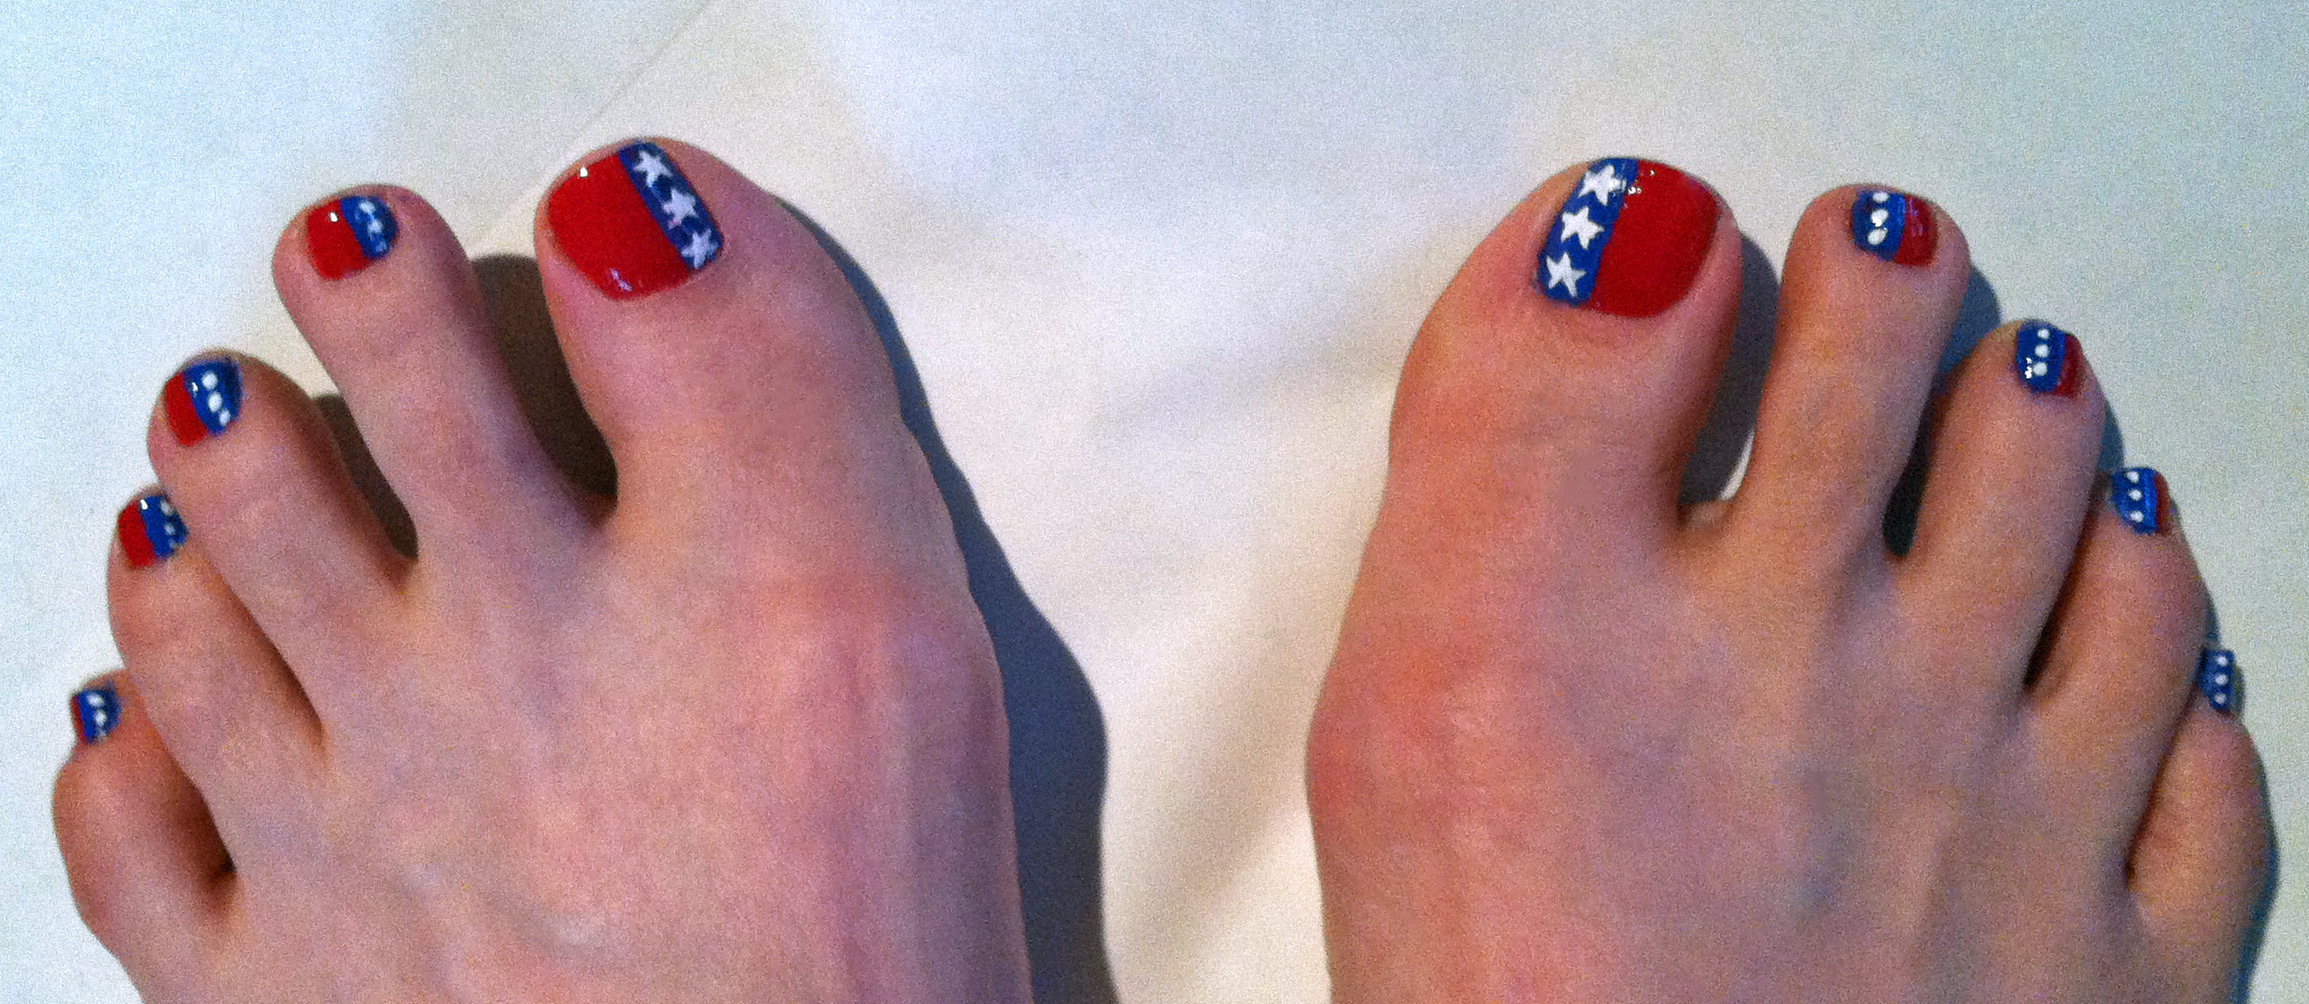 Star spangled toes a patriotic 4th of july nail art pedicure with all finished polish drying prinsesfo Gallery